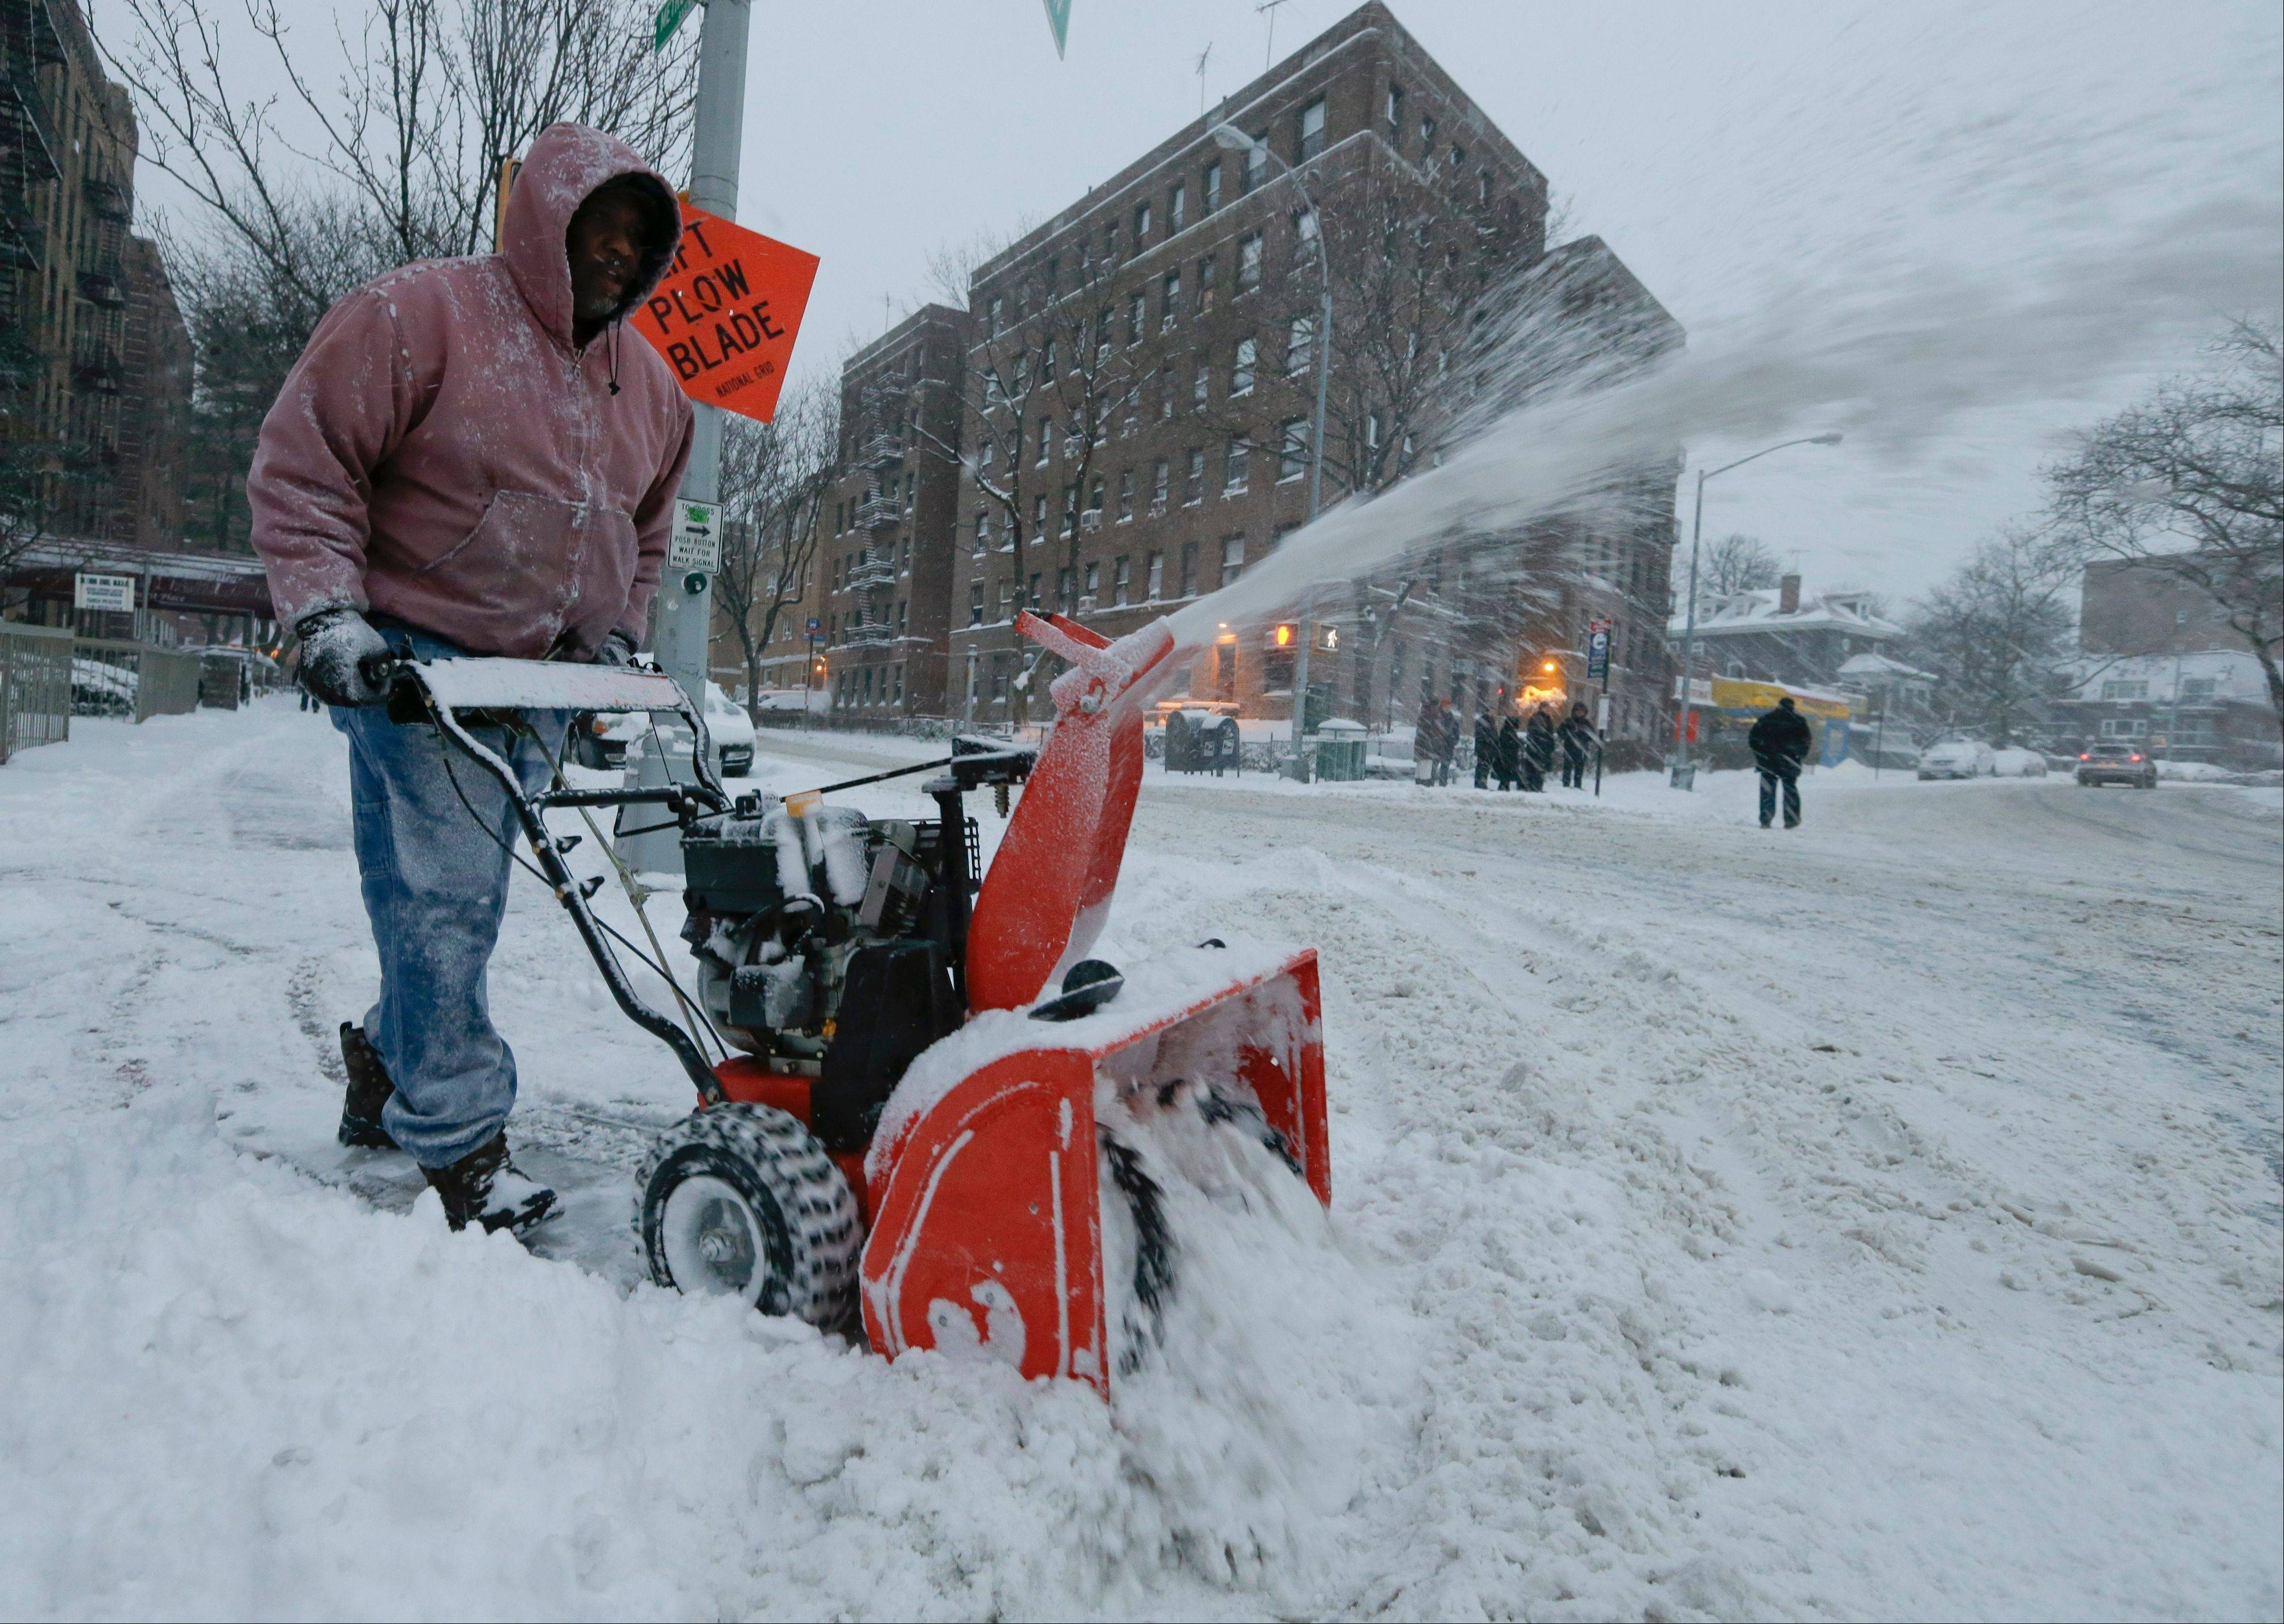 A man who did not wish to be identified uses a snowblower to clear a path Friday, Jan. 3, 2014, in New York. The New York City Office of Emergency Management issued a hazardous travel advisory into Friday, warning that roads likely would be icy and snow would continue to drift.